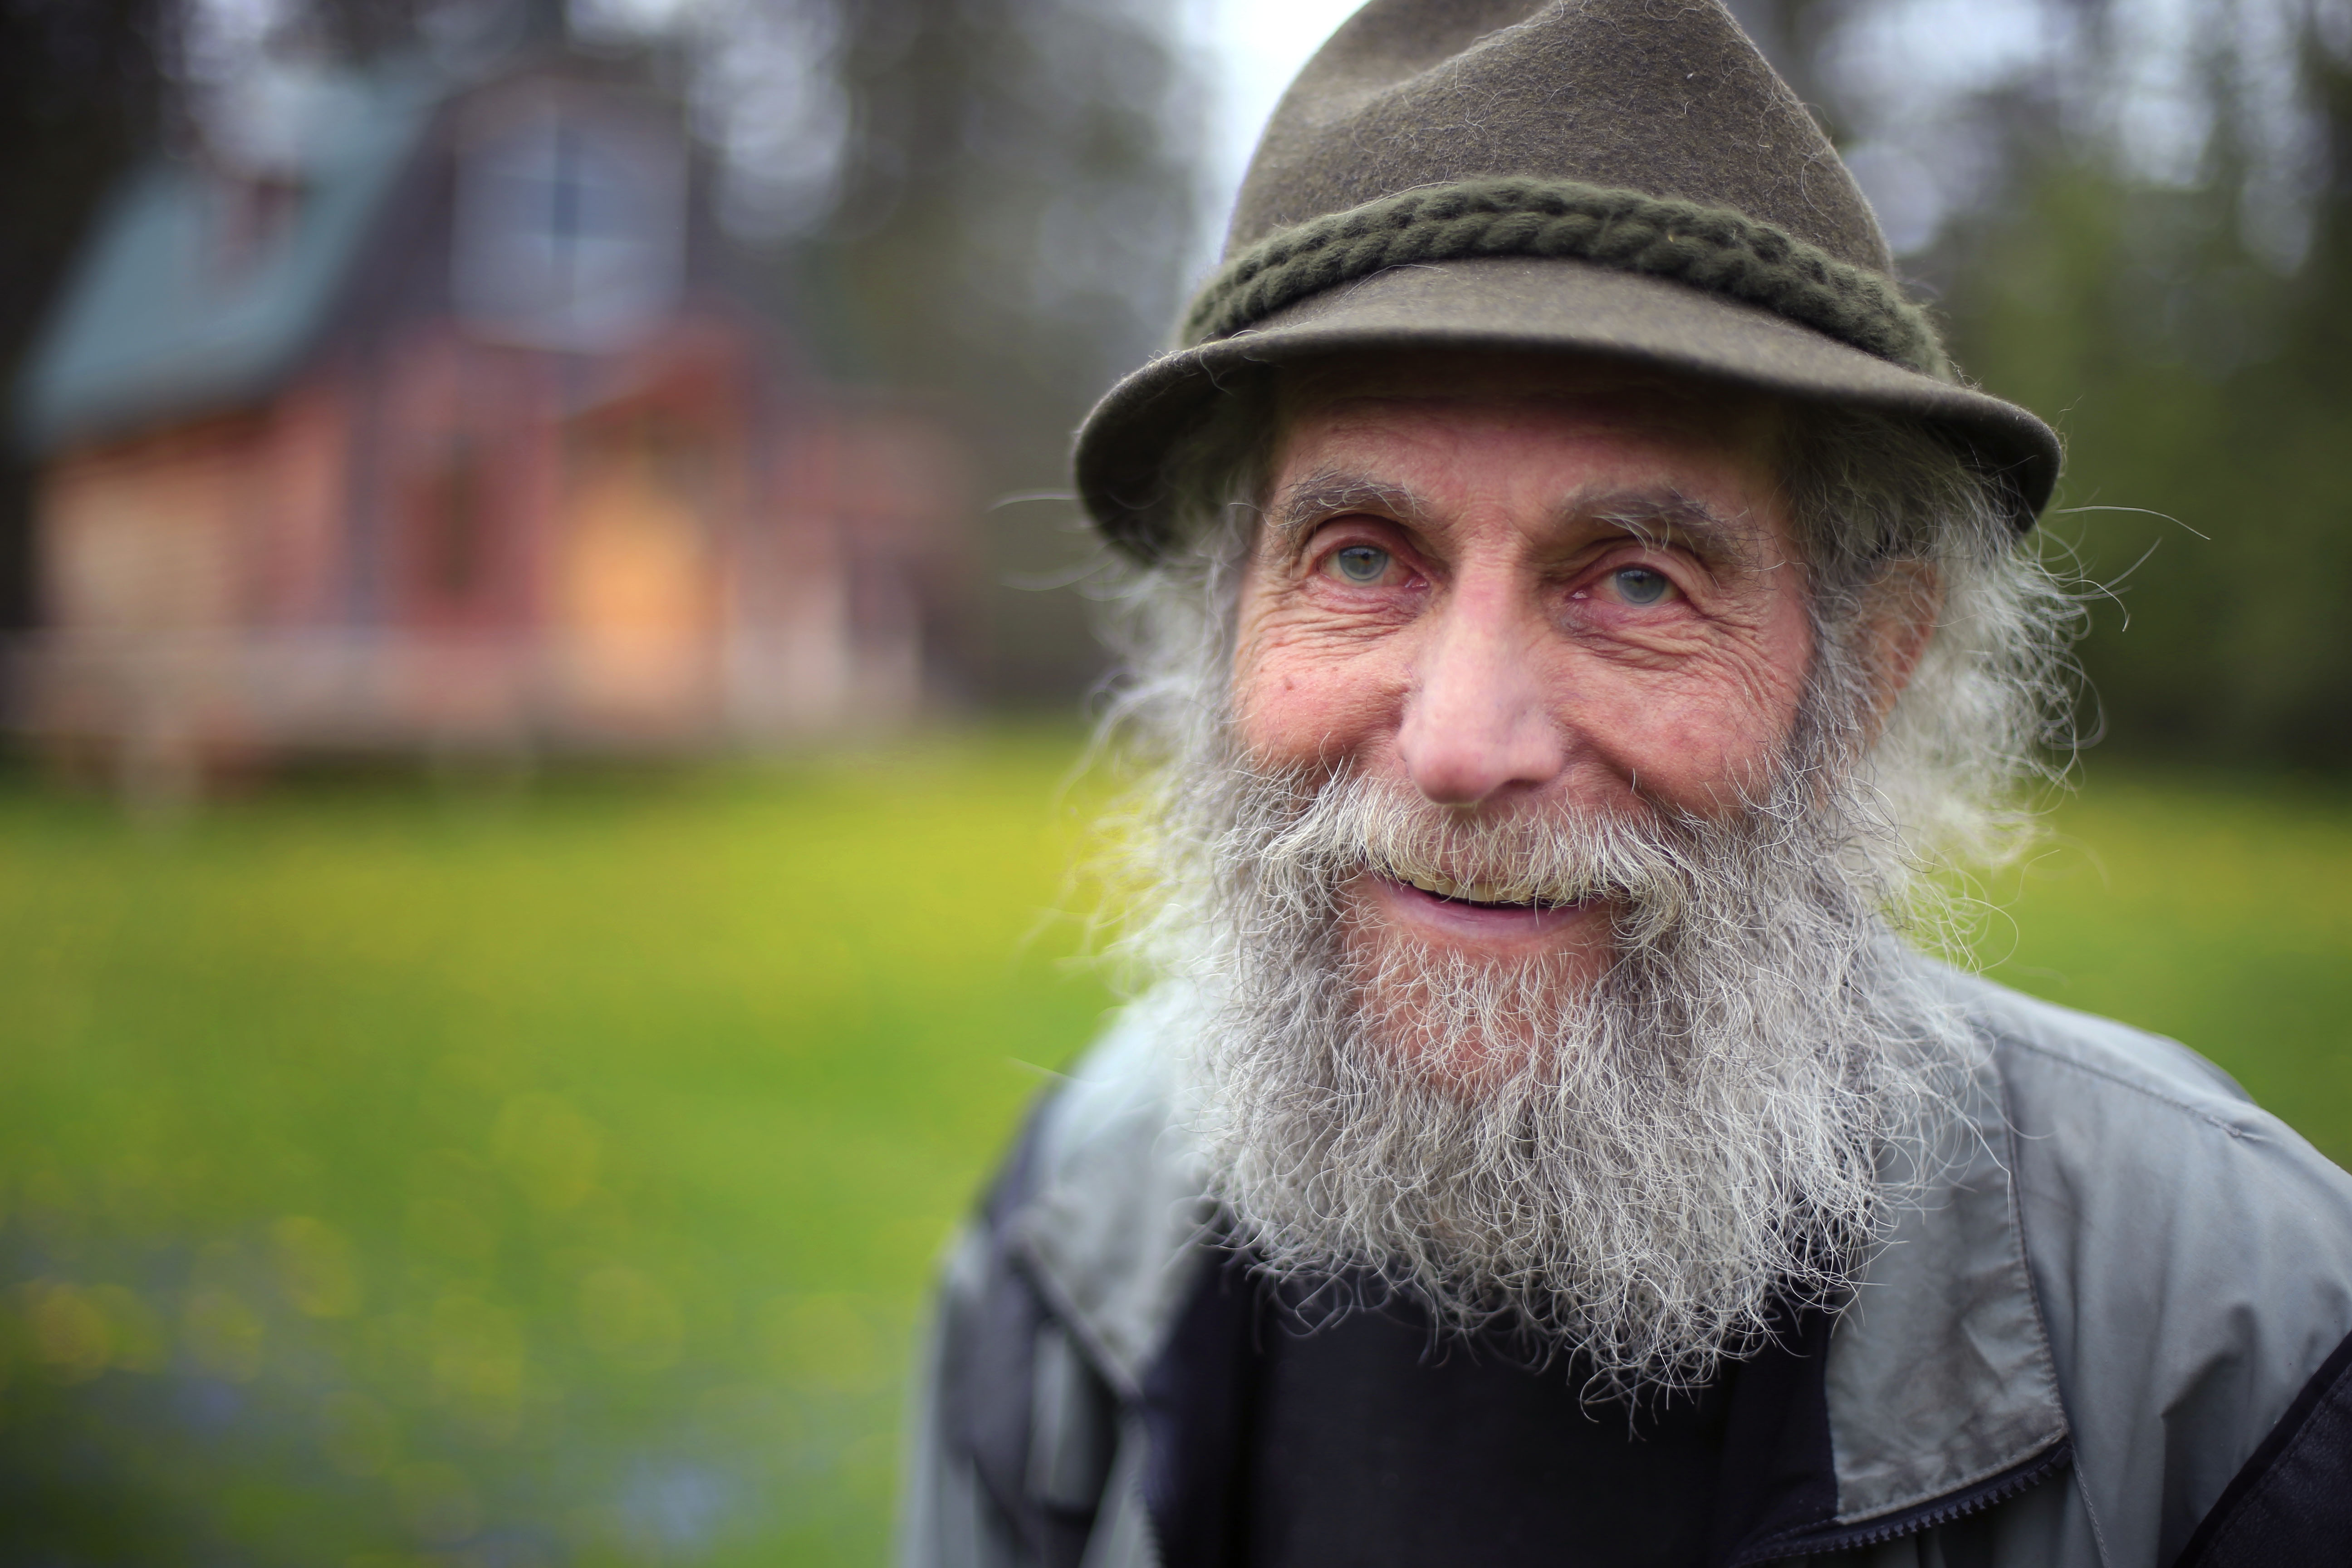 Burt Shavitz poses for a photo on his property in Parkman, Maine. Shavitz, a former beekeeper, is the Burt behind Burt's Bees